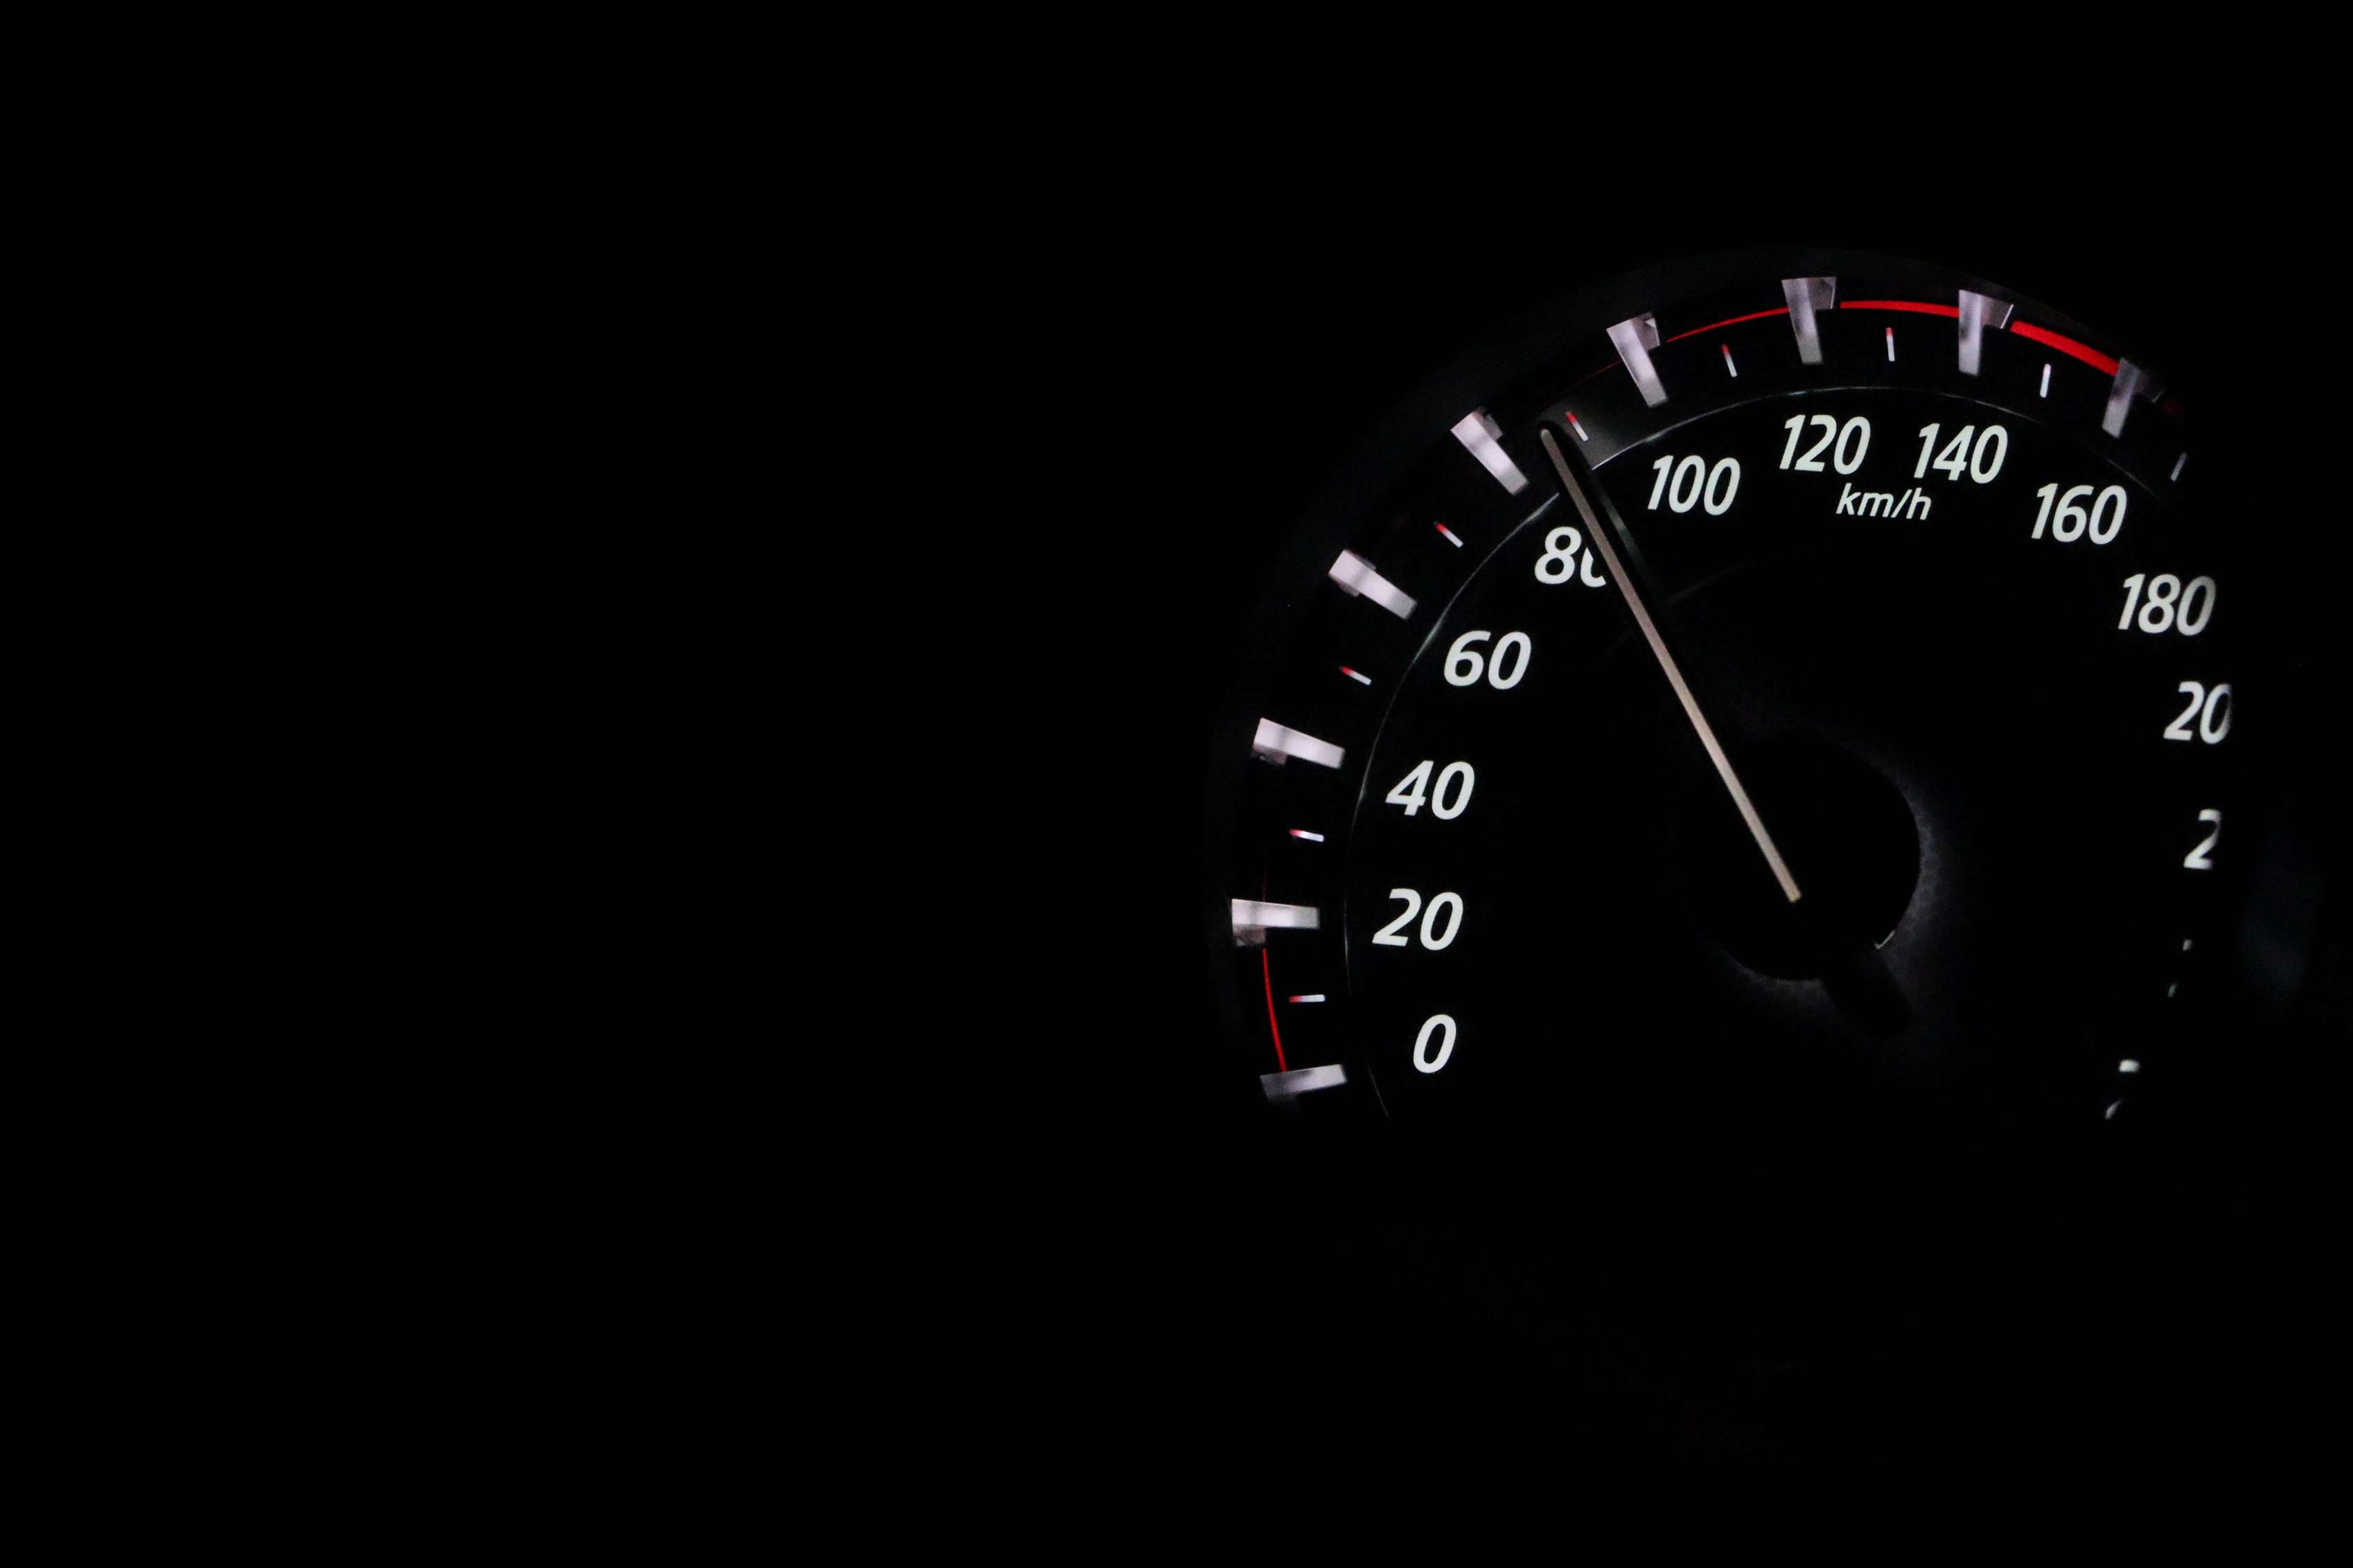 Speedometer showing over 80 mph at night